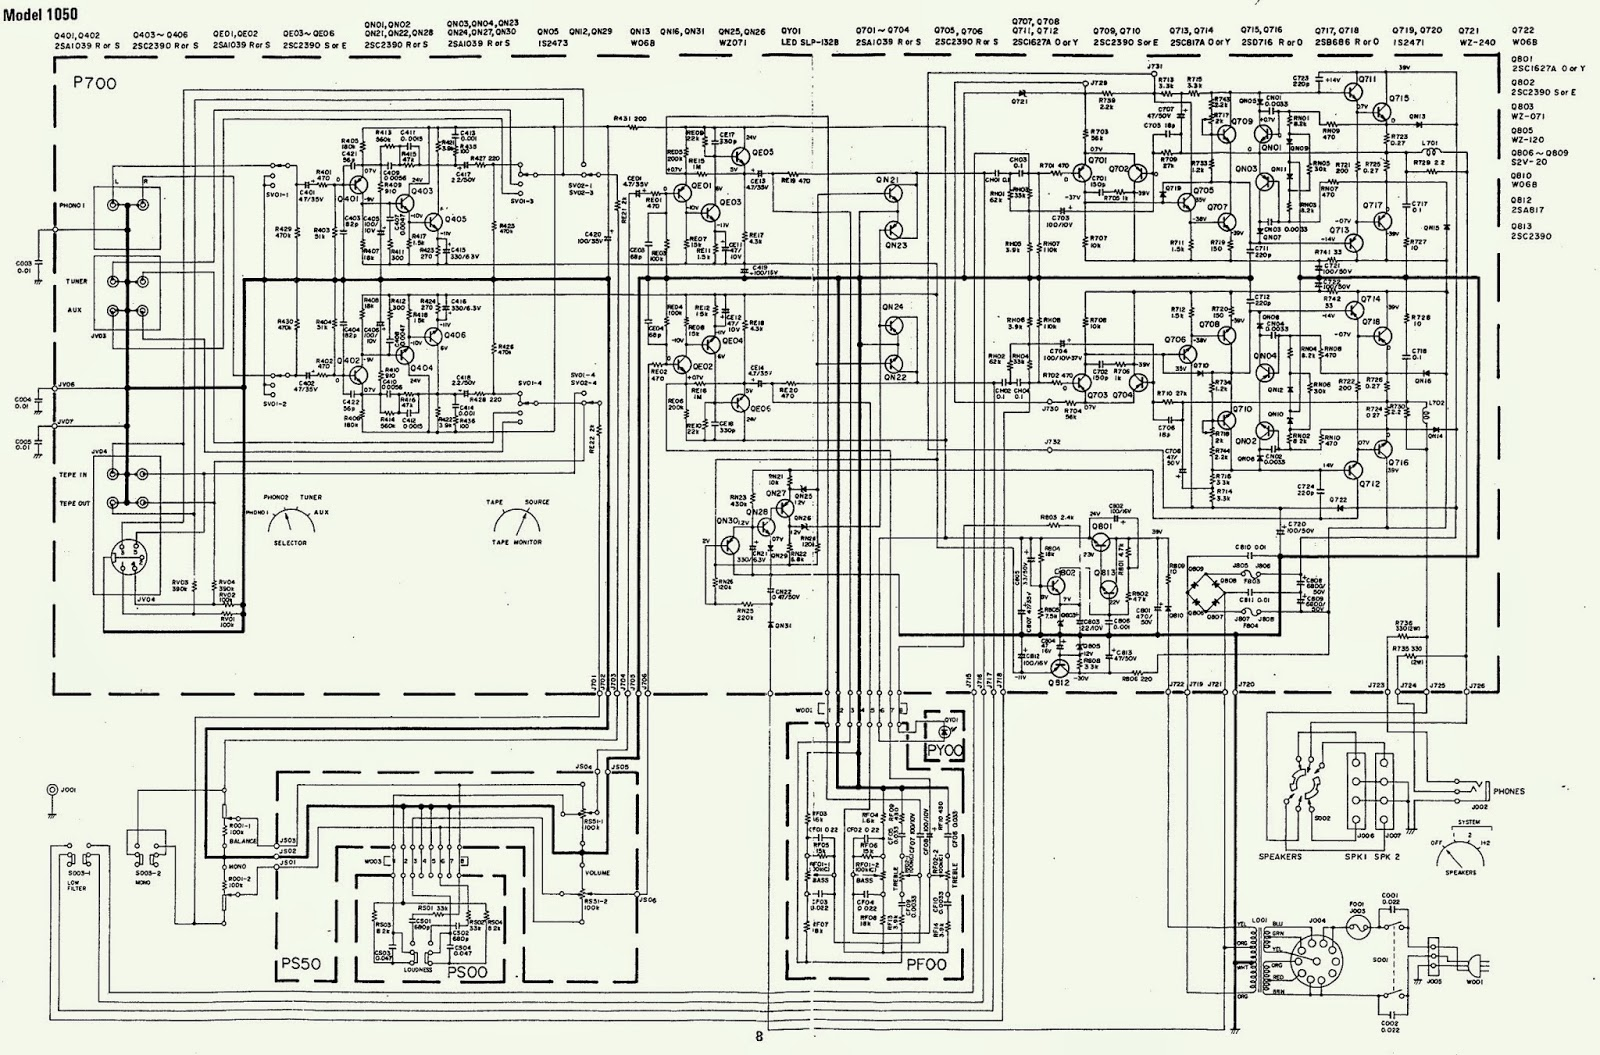 Blaupunkt Opel Car 300 Nt Opel Car 300 in addition 1492 JG besides Anesthesia Machines together with P 0900c152800a7698 furthermore Citroen Dispatch Wiring Diagram. on troubleshooting diagrams